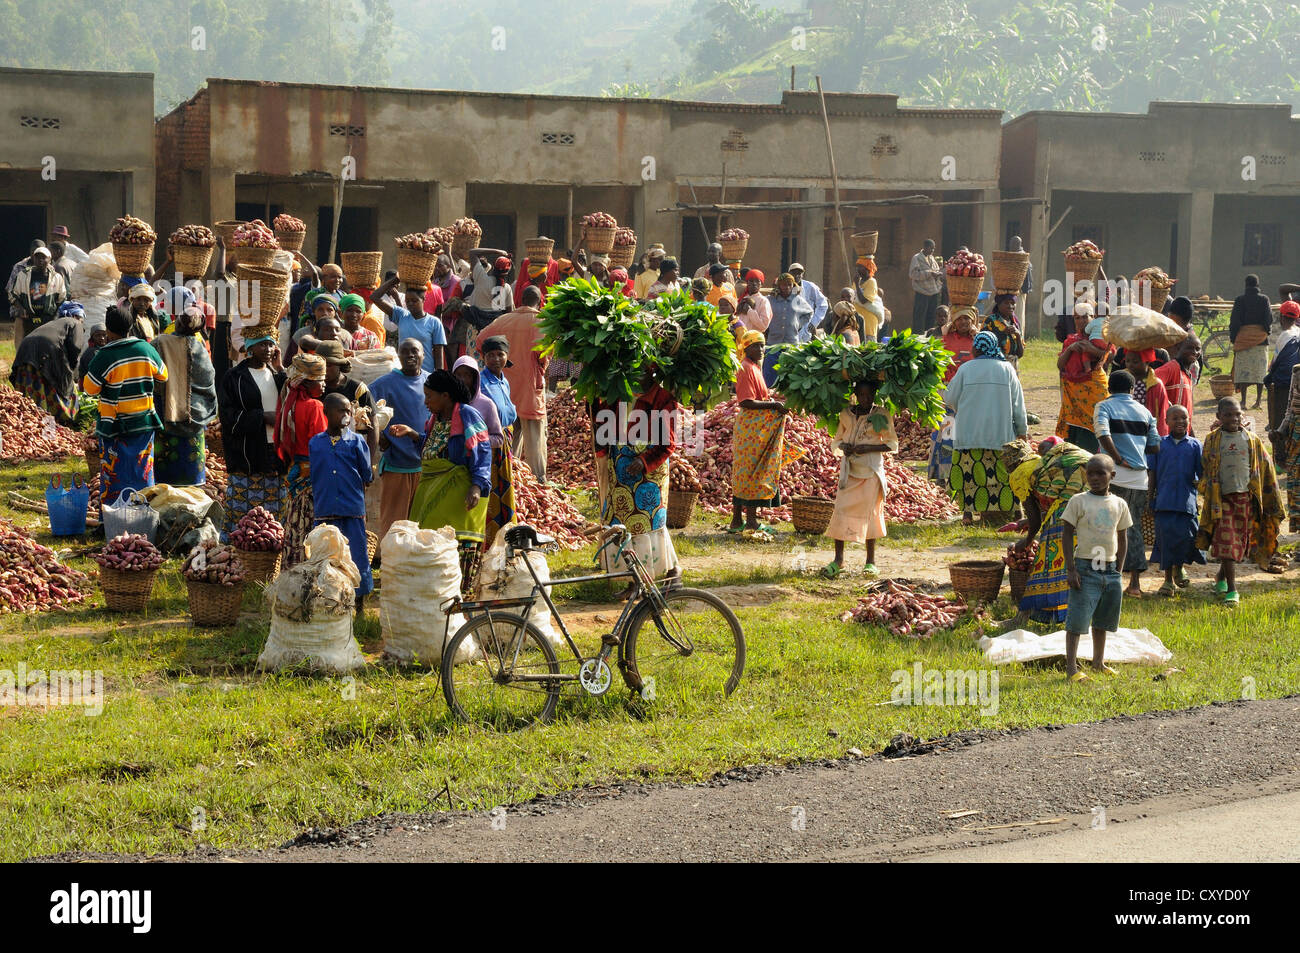 Market in a village near the town of Busengo, Rwanda, Africa Stock Photo